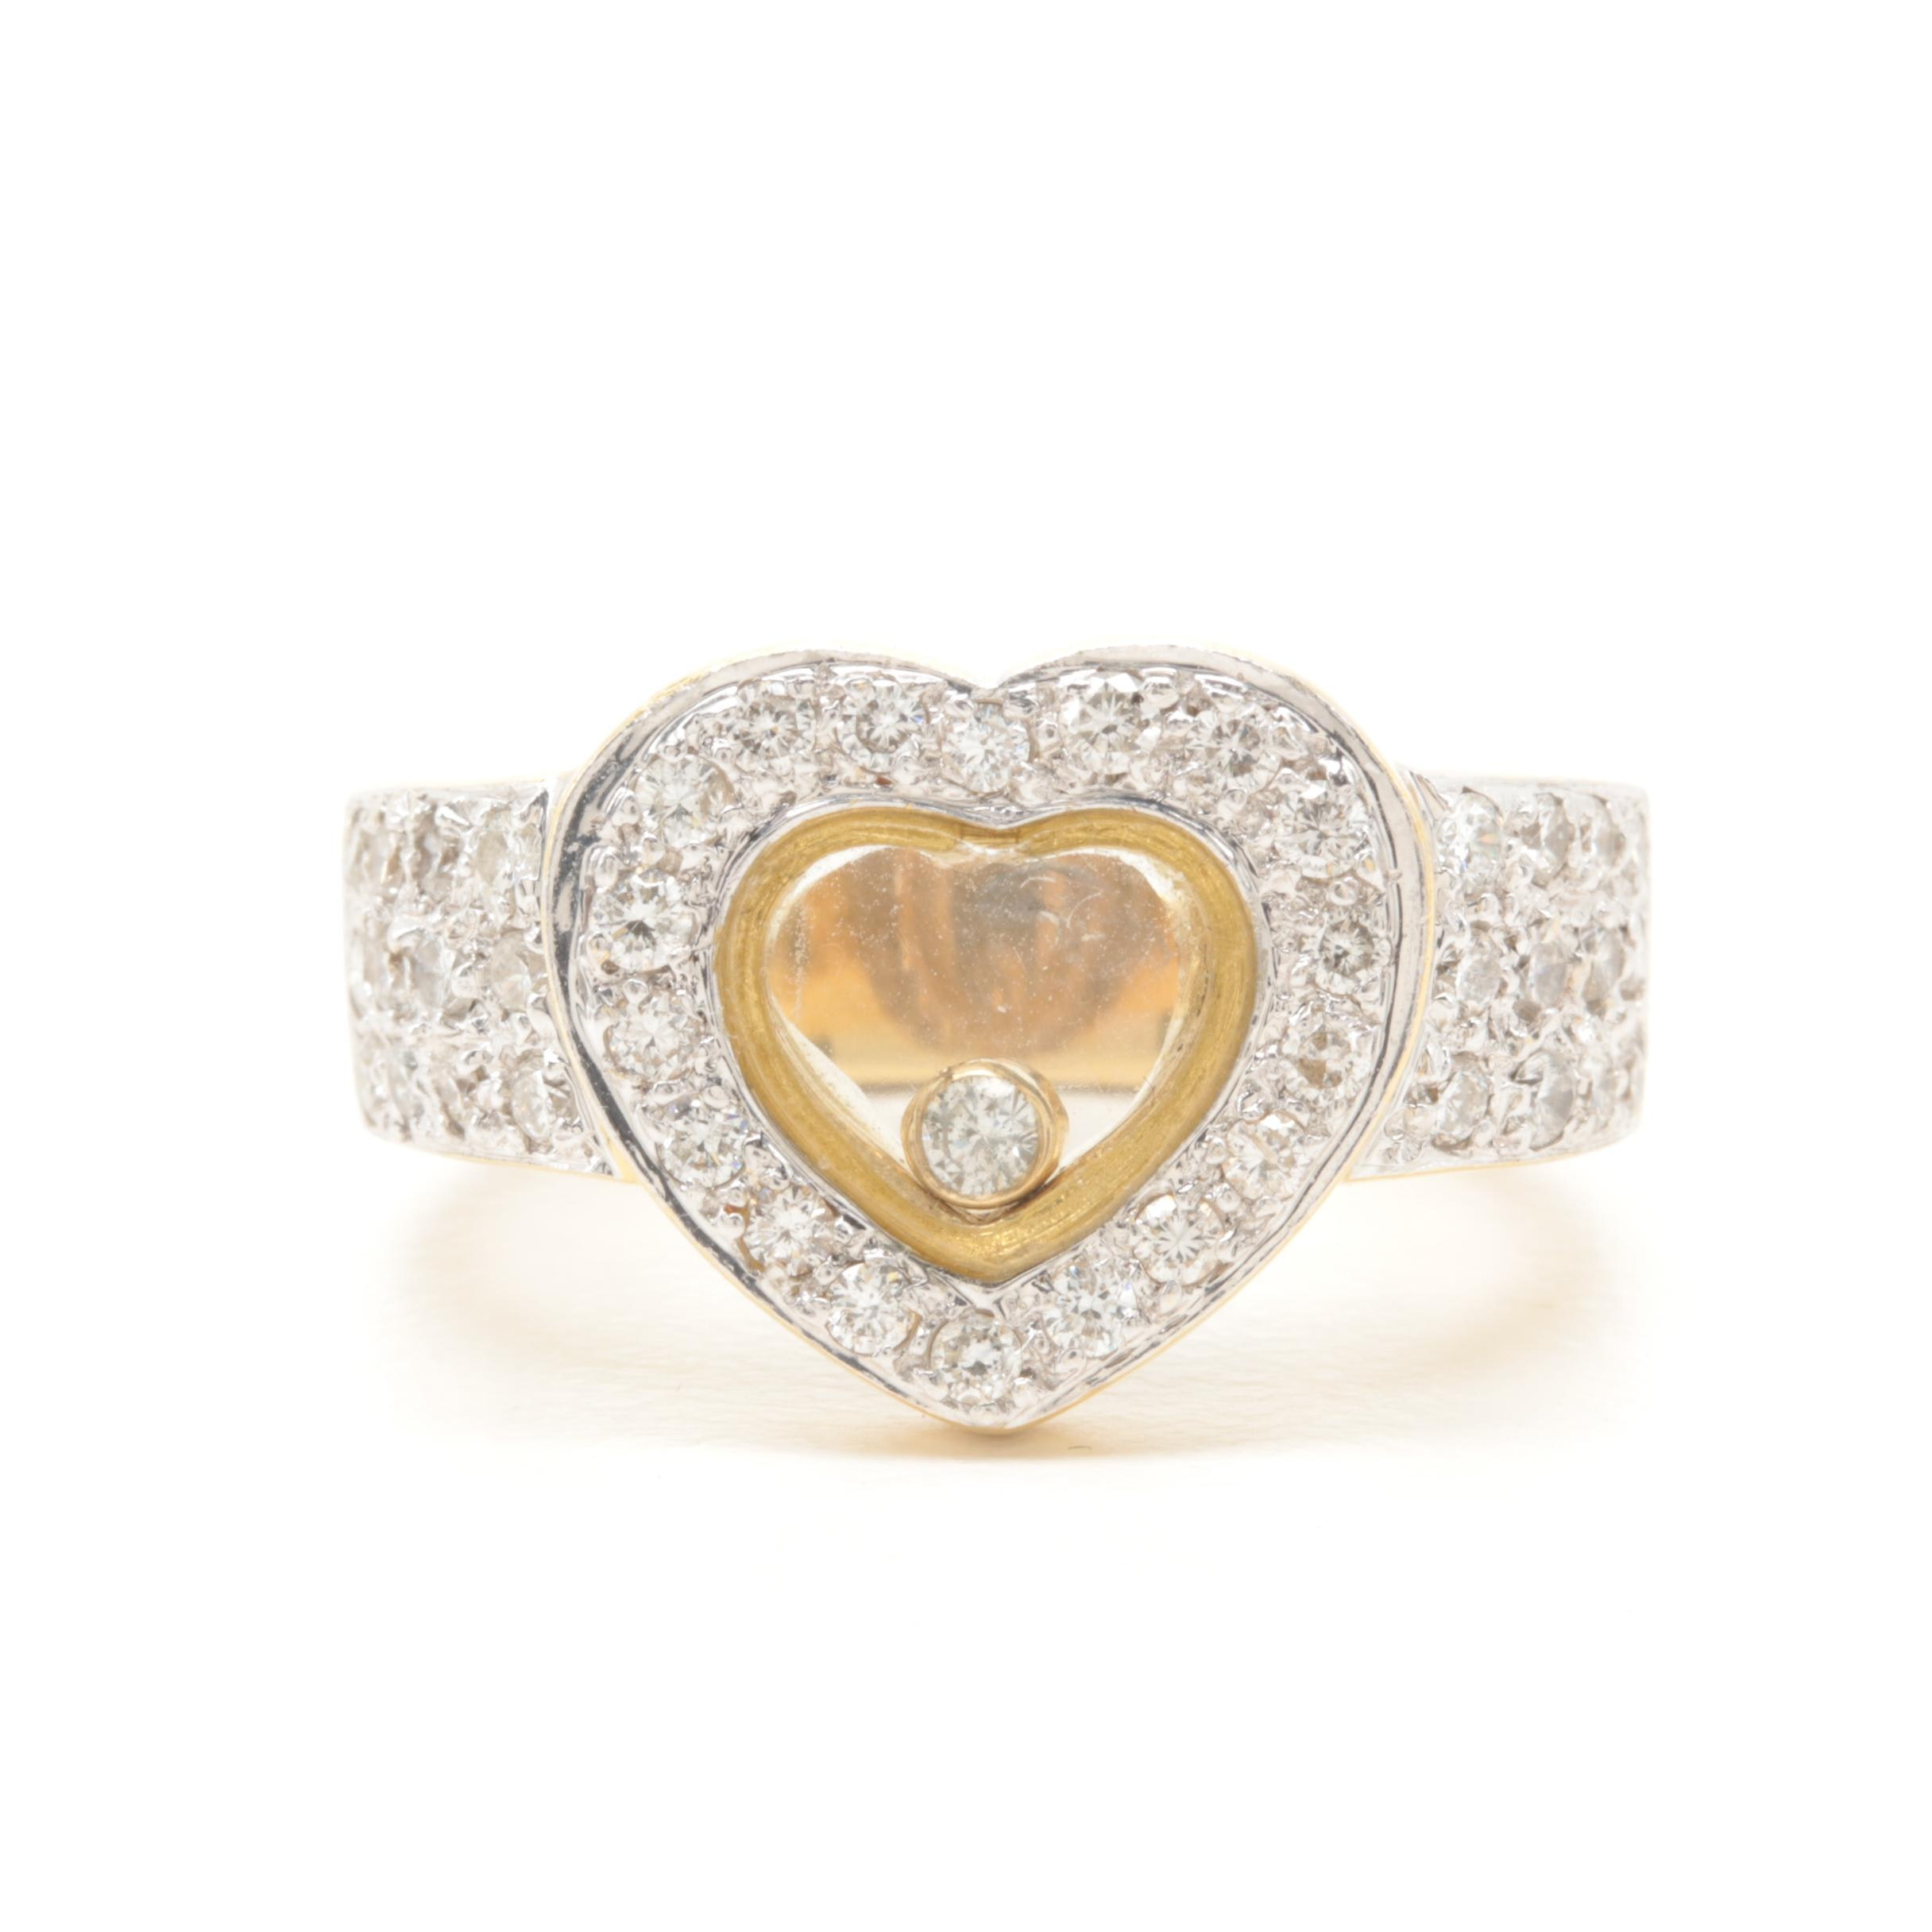 18K Yellow Gold Diamond Heart Ring with Floating Diamond